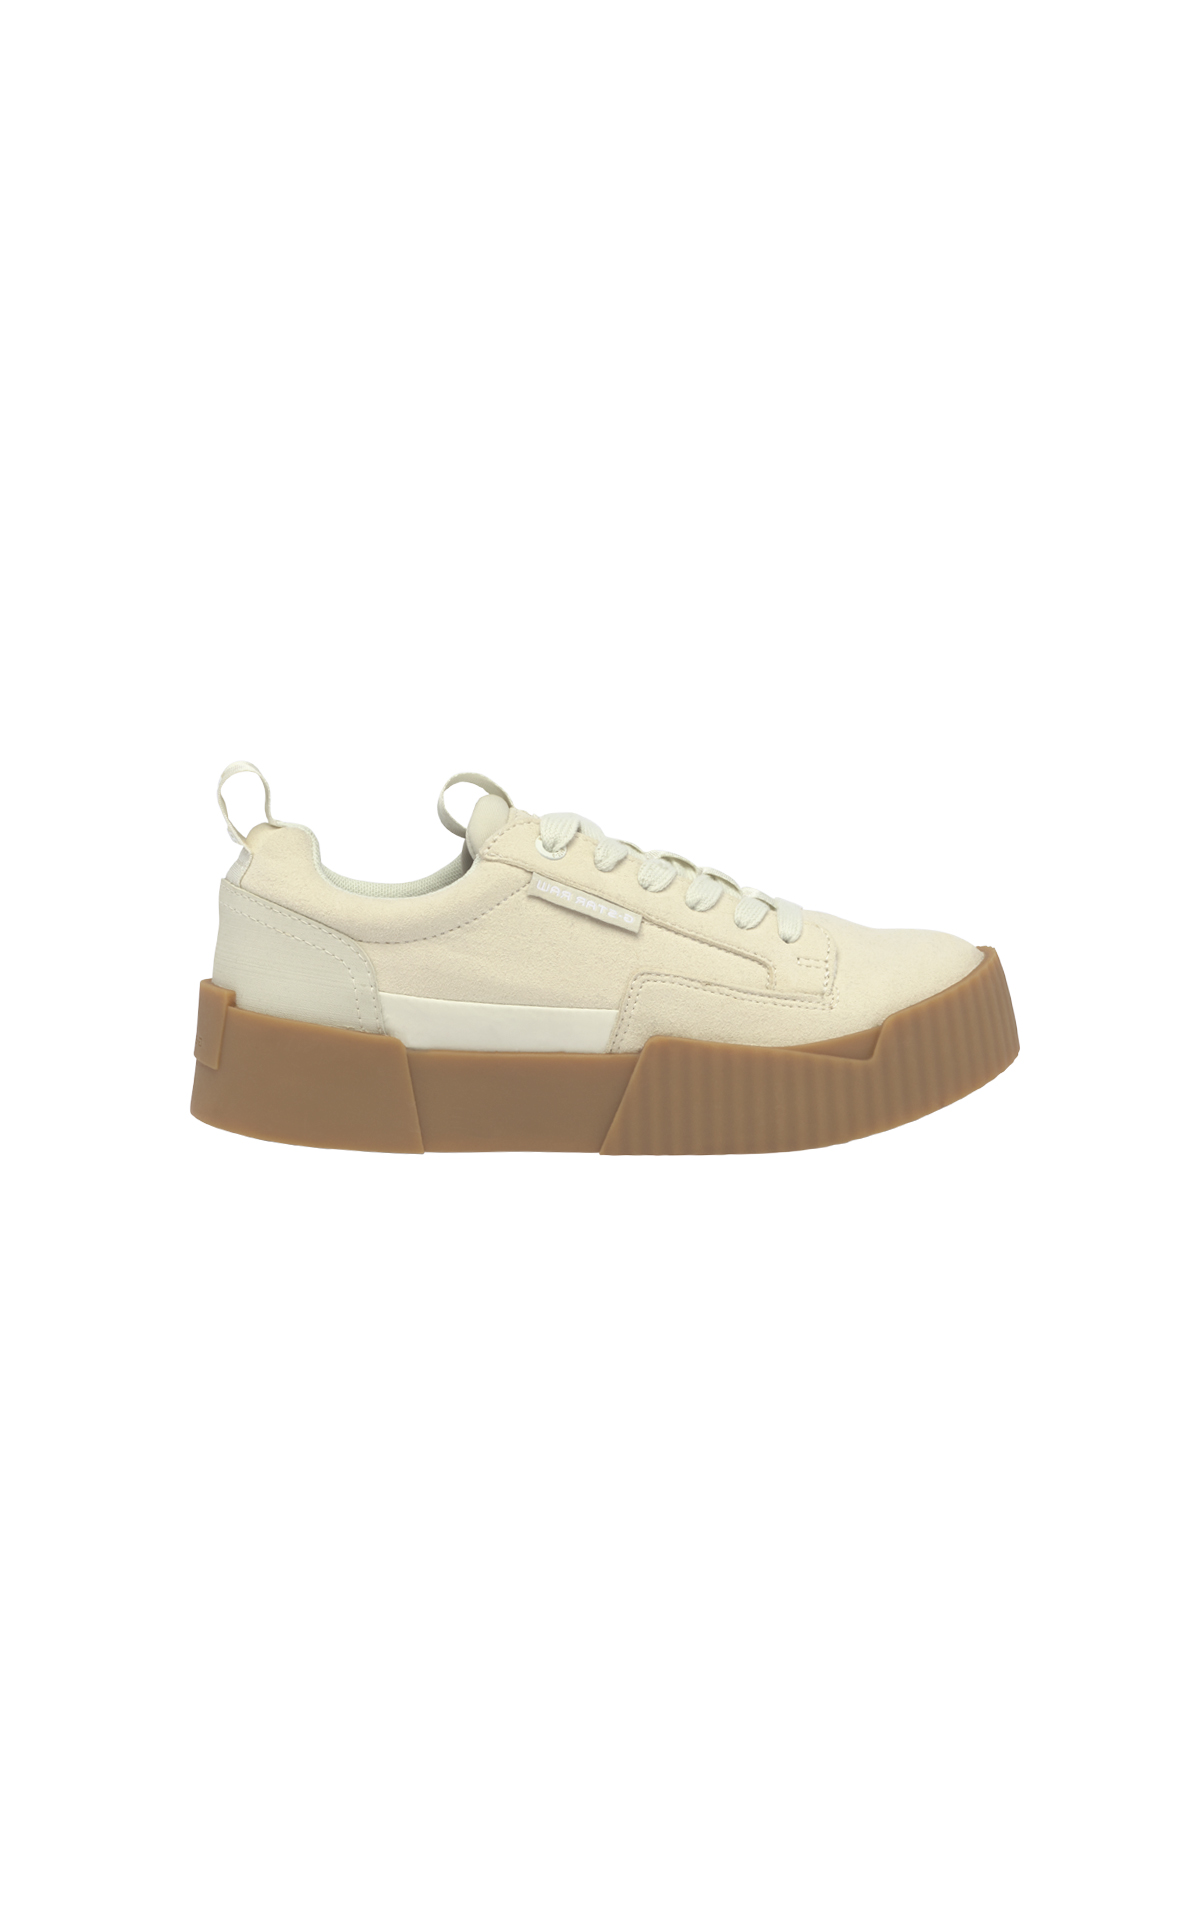 Zapatillas beige G-Star RAW